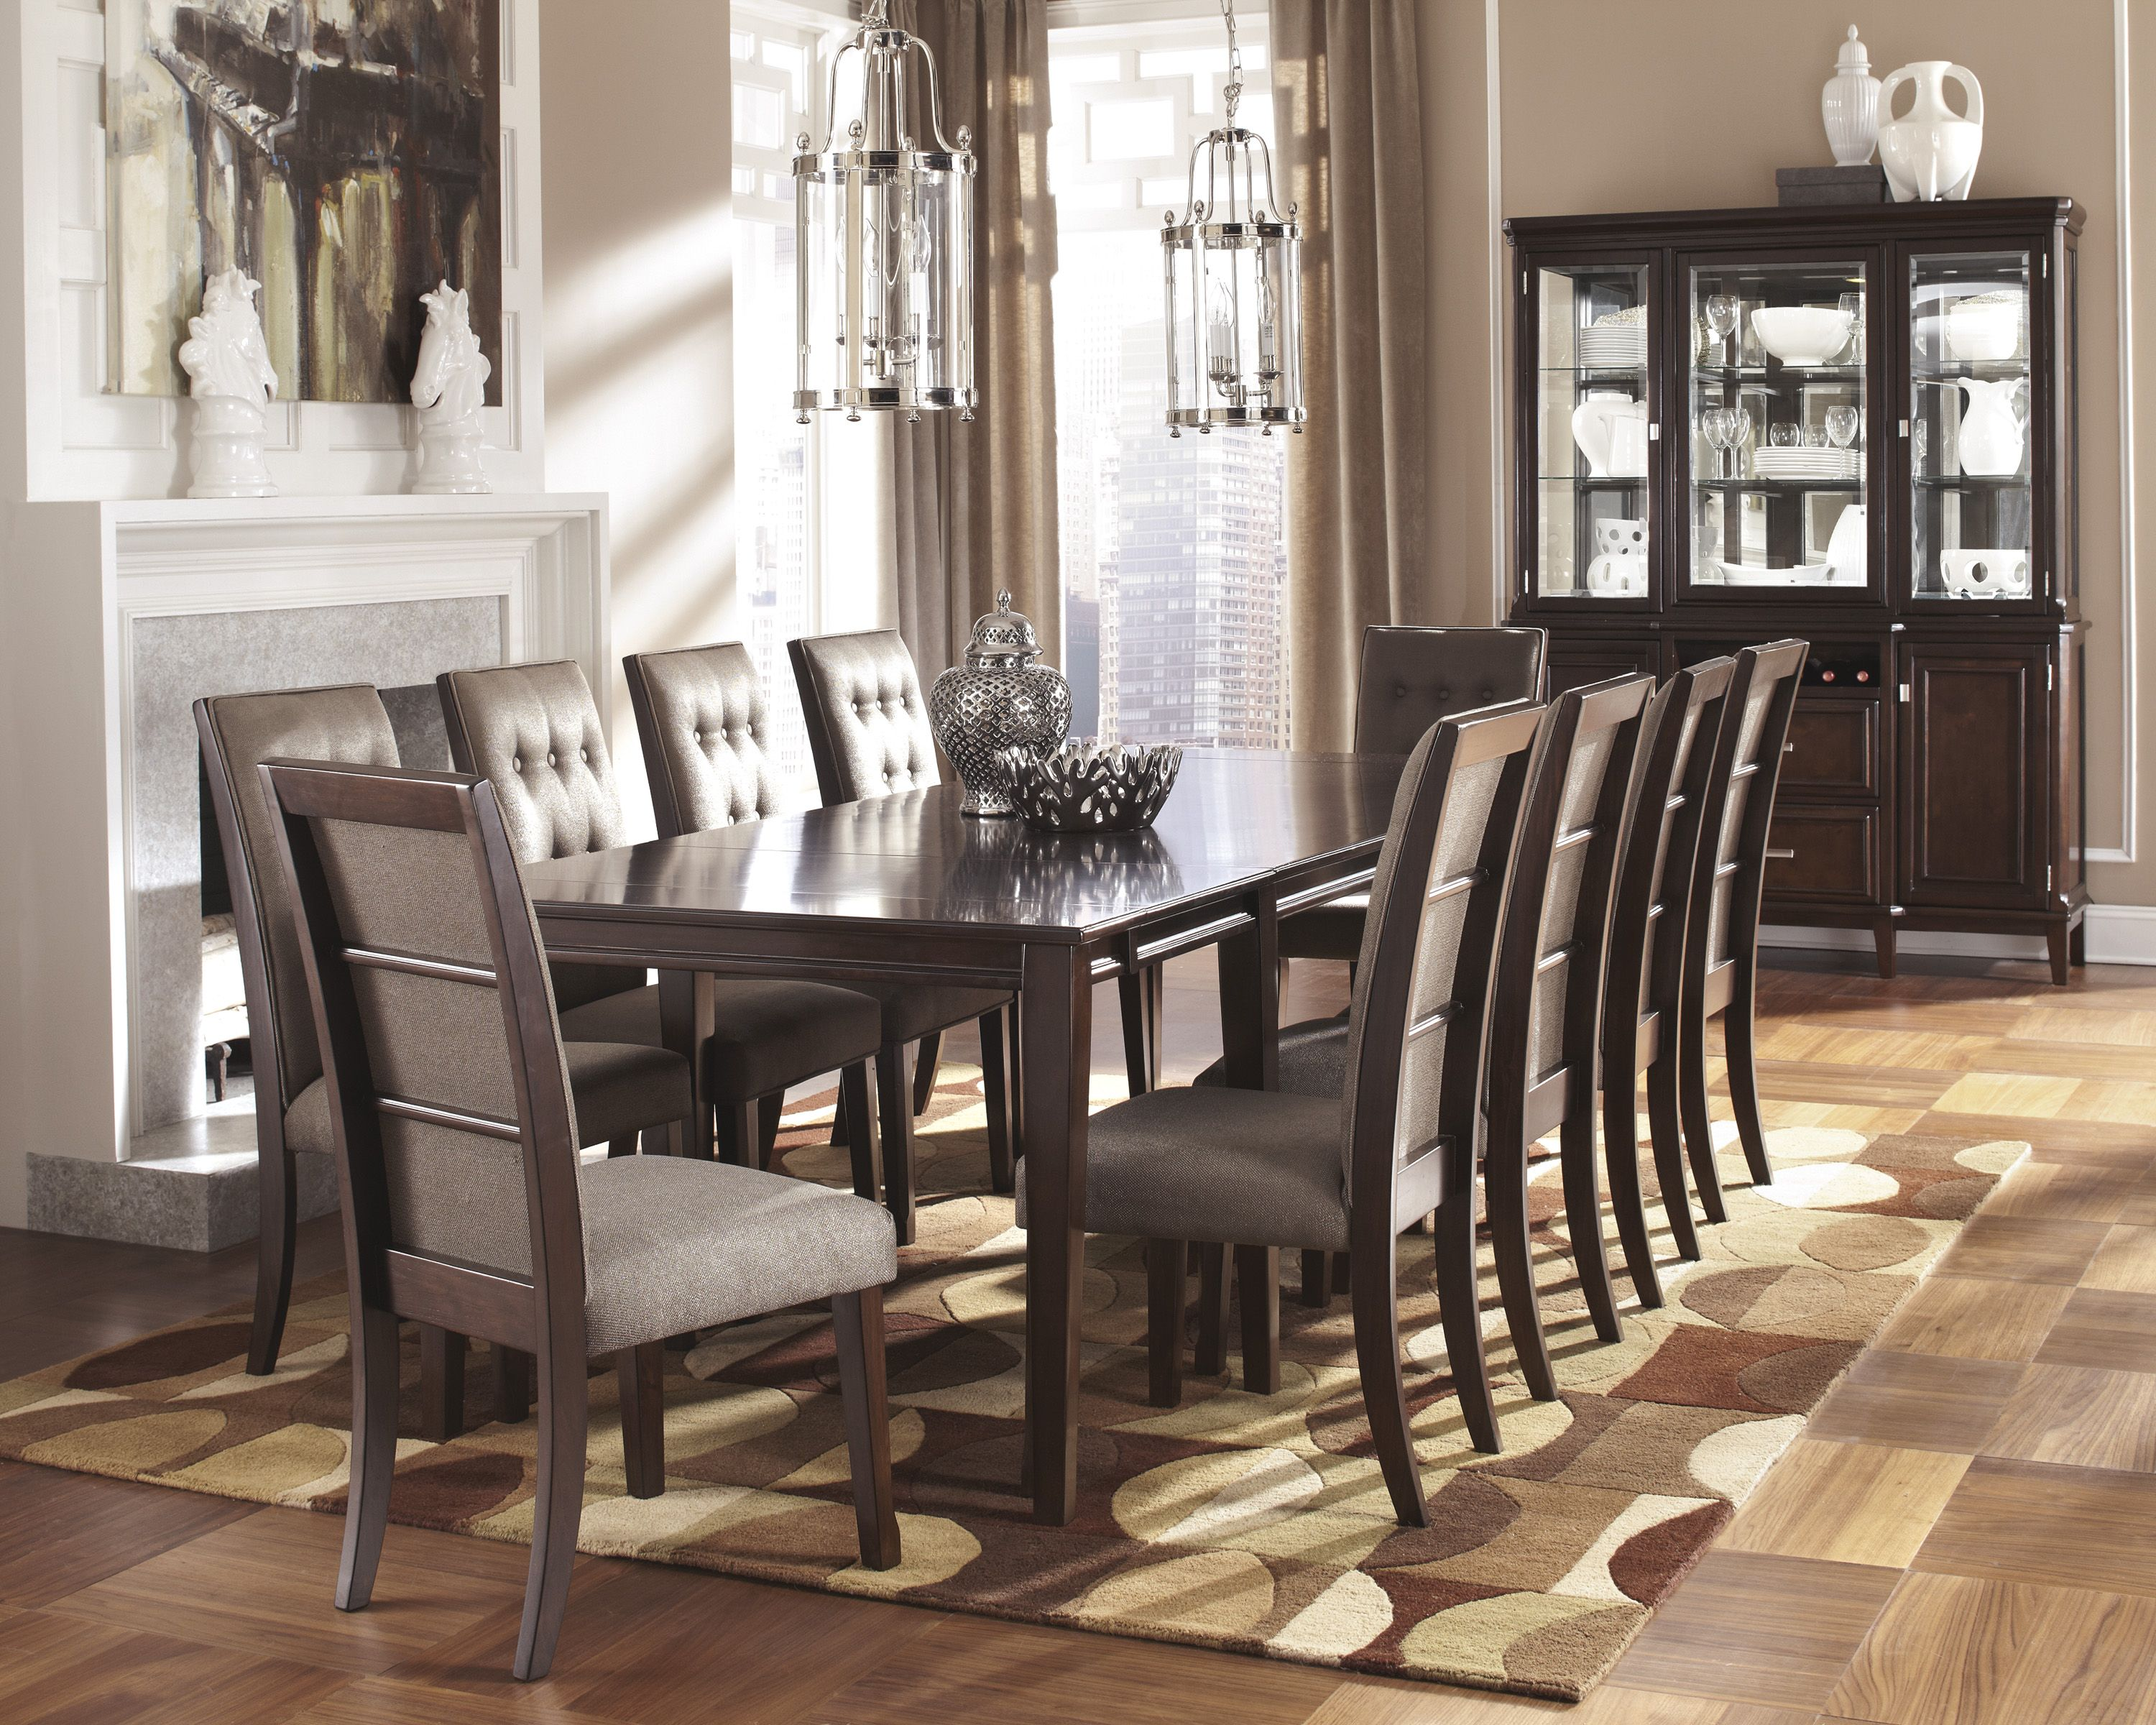 Cool Dining Room Table Ideas Amazing Inspiration Design